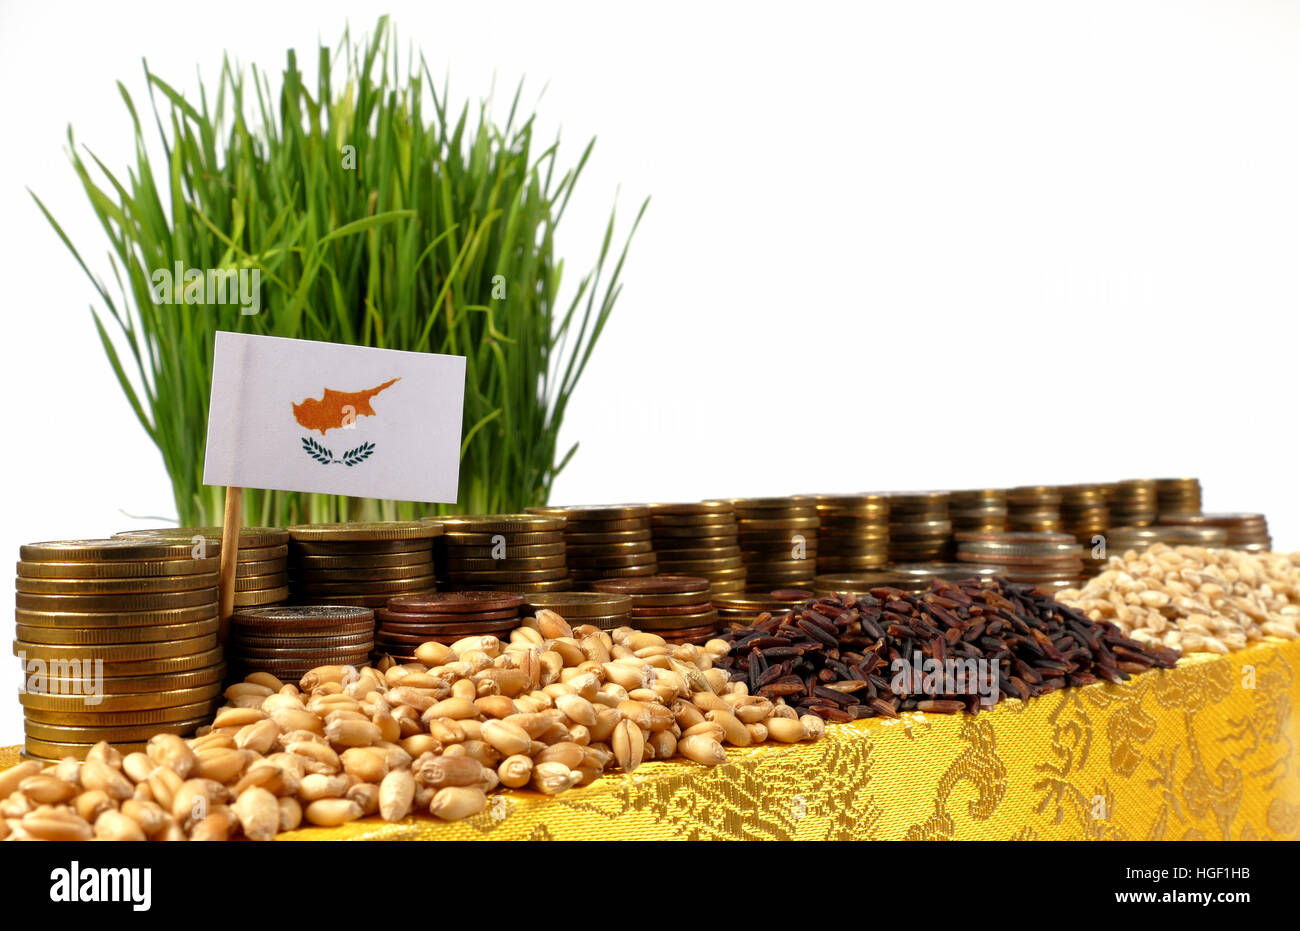 Cyprus flag waving with stack of money coins and piles of wheat and rice seeds - Stock Image